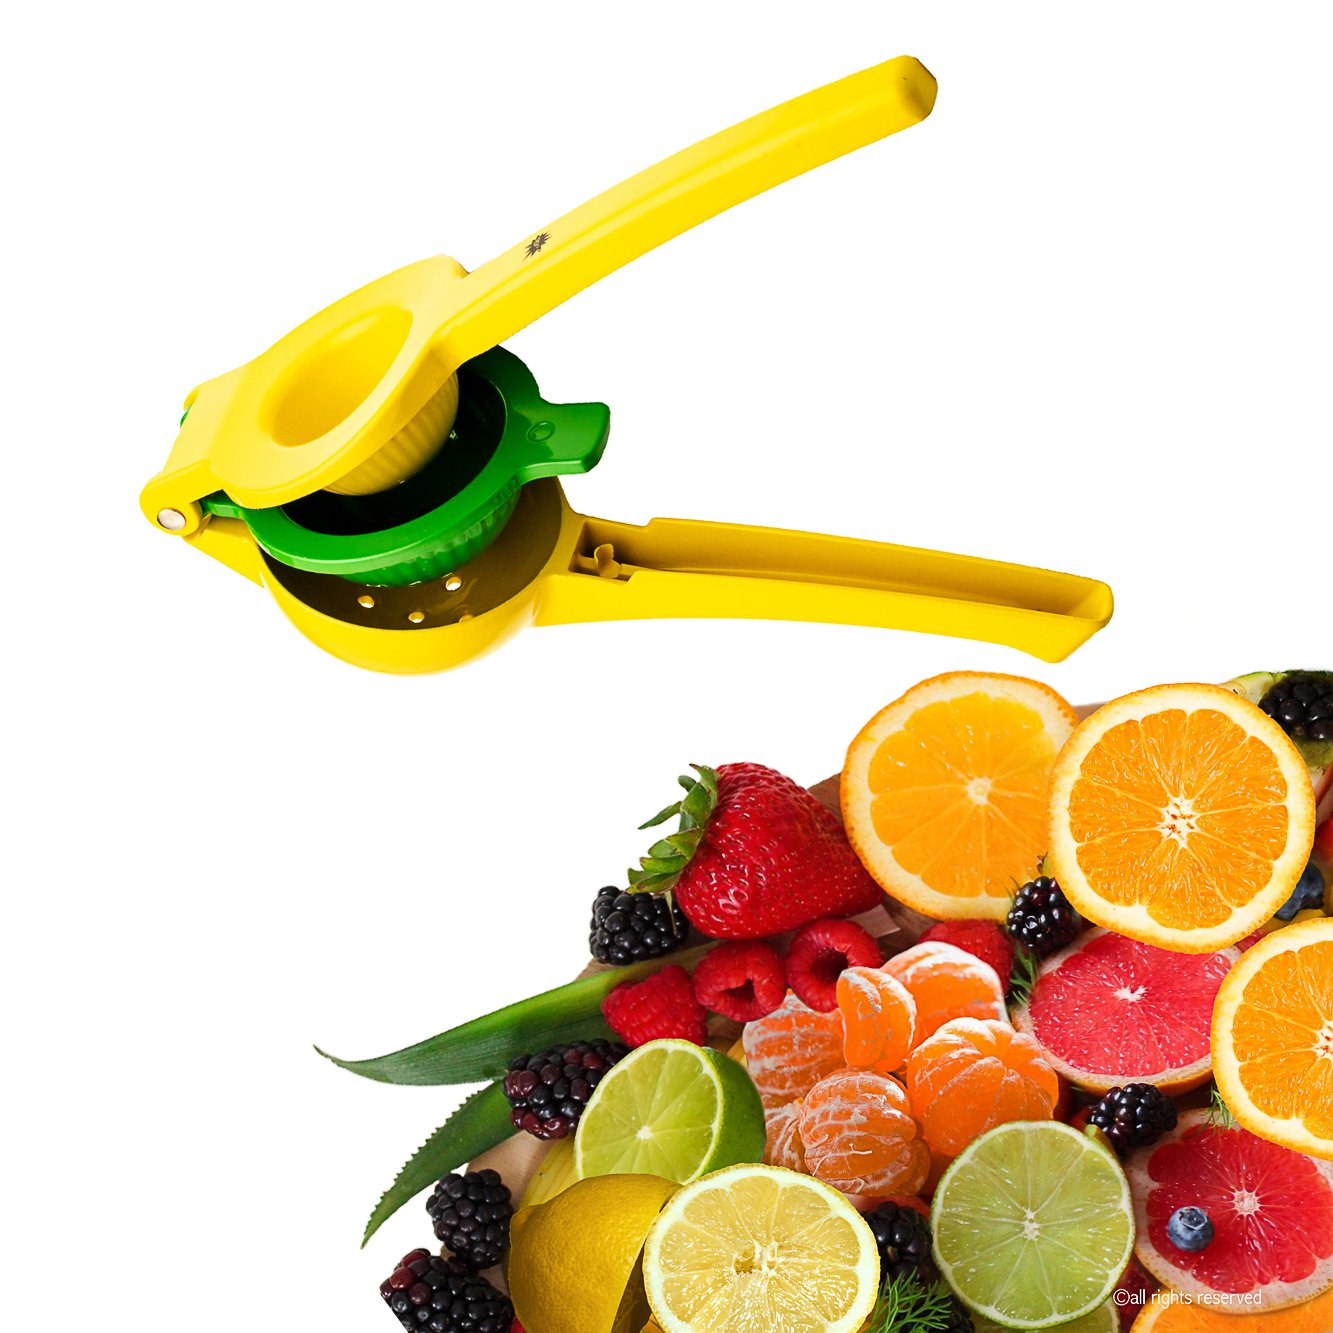 JPOL Top Rated Lemon Lime Squeezer Manual Citrus Hand Press Juicer Premium Quality Metal JP-kp-82